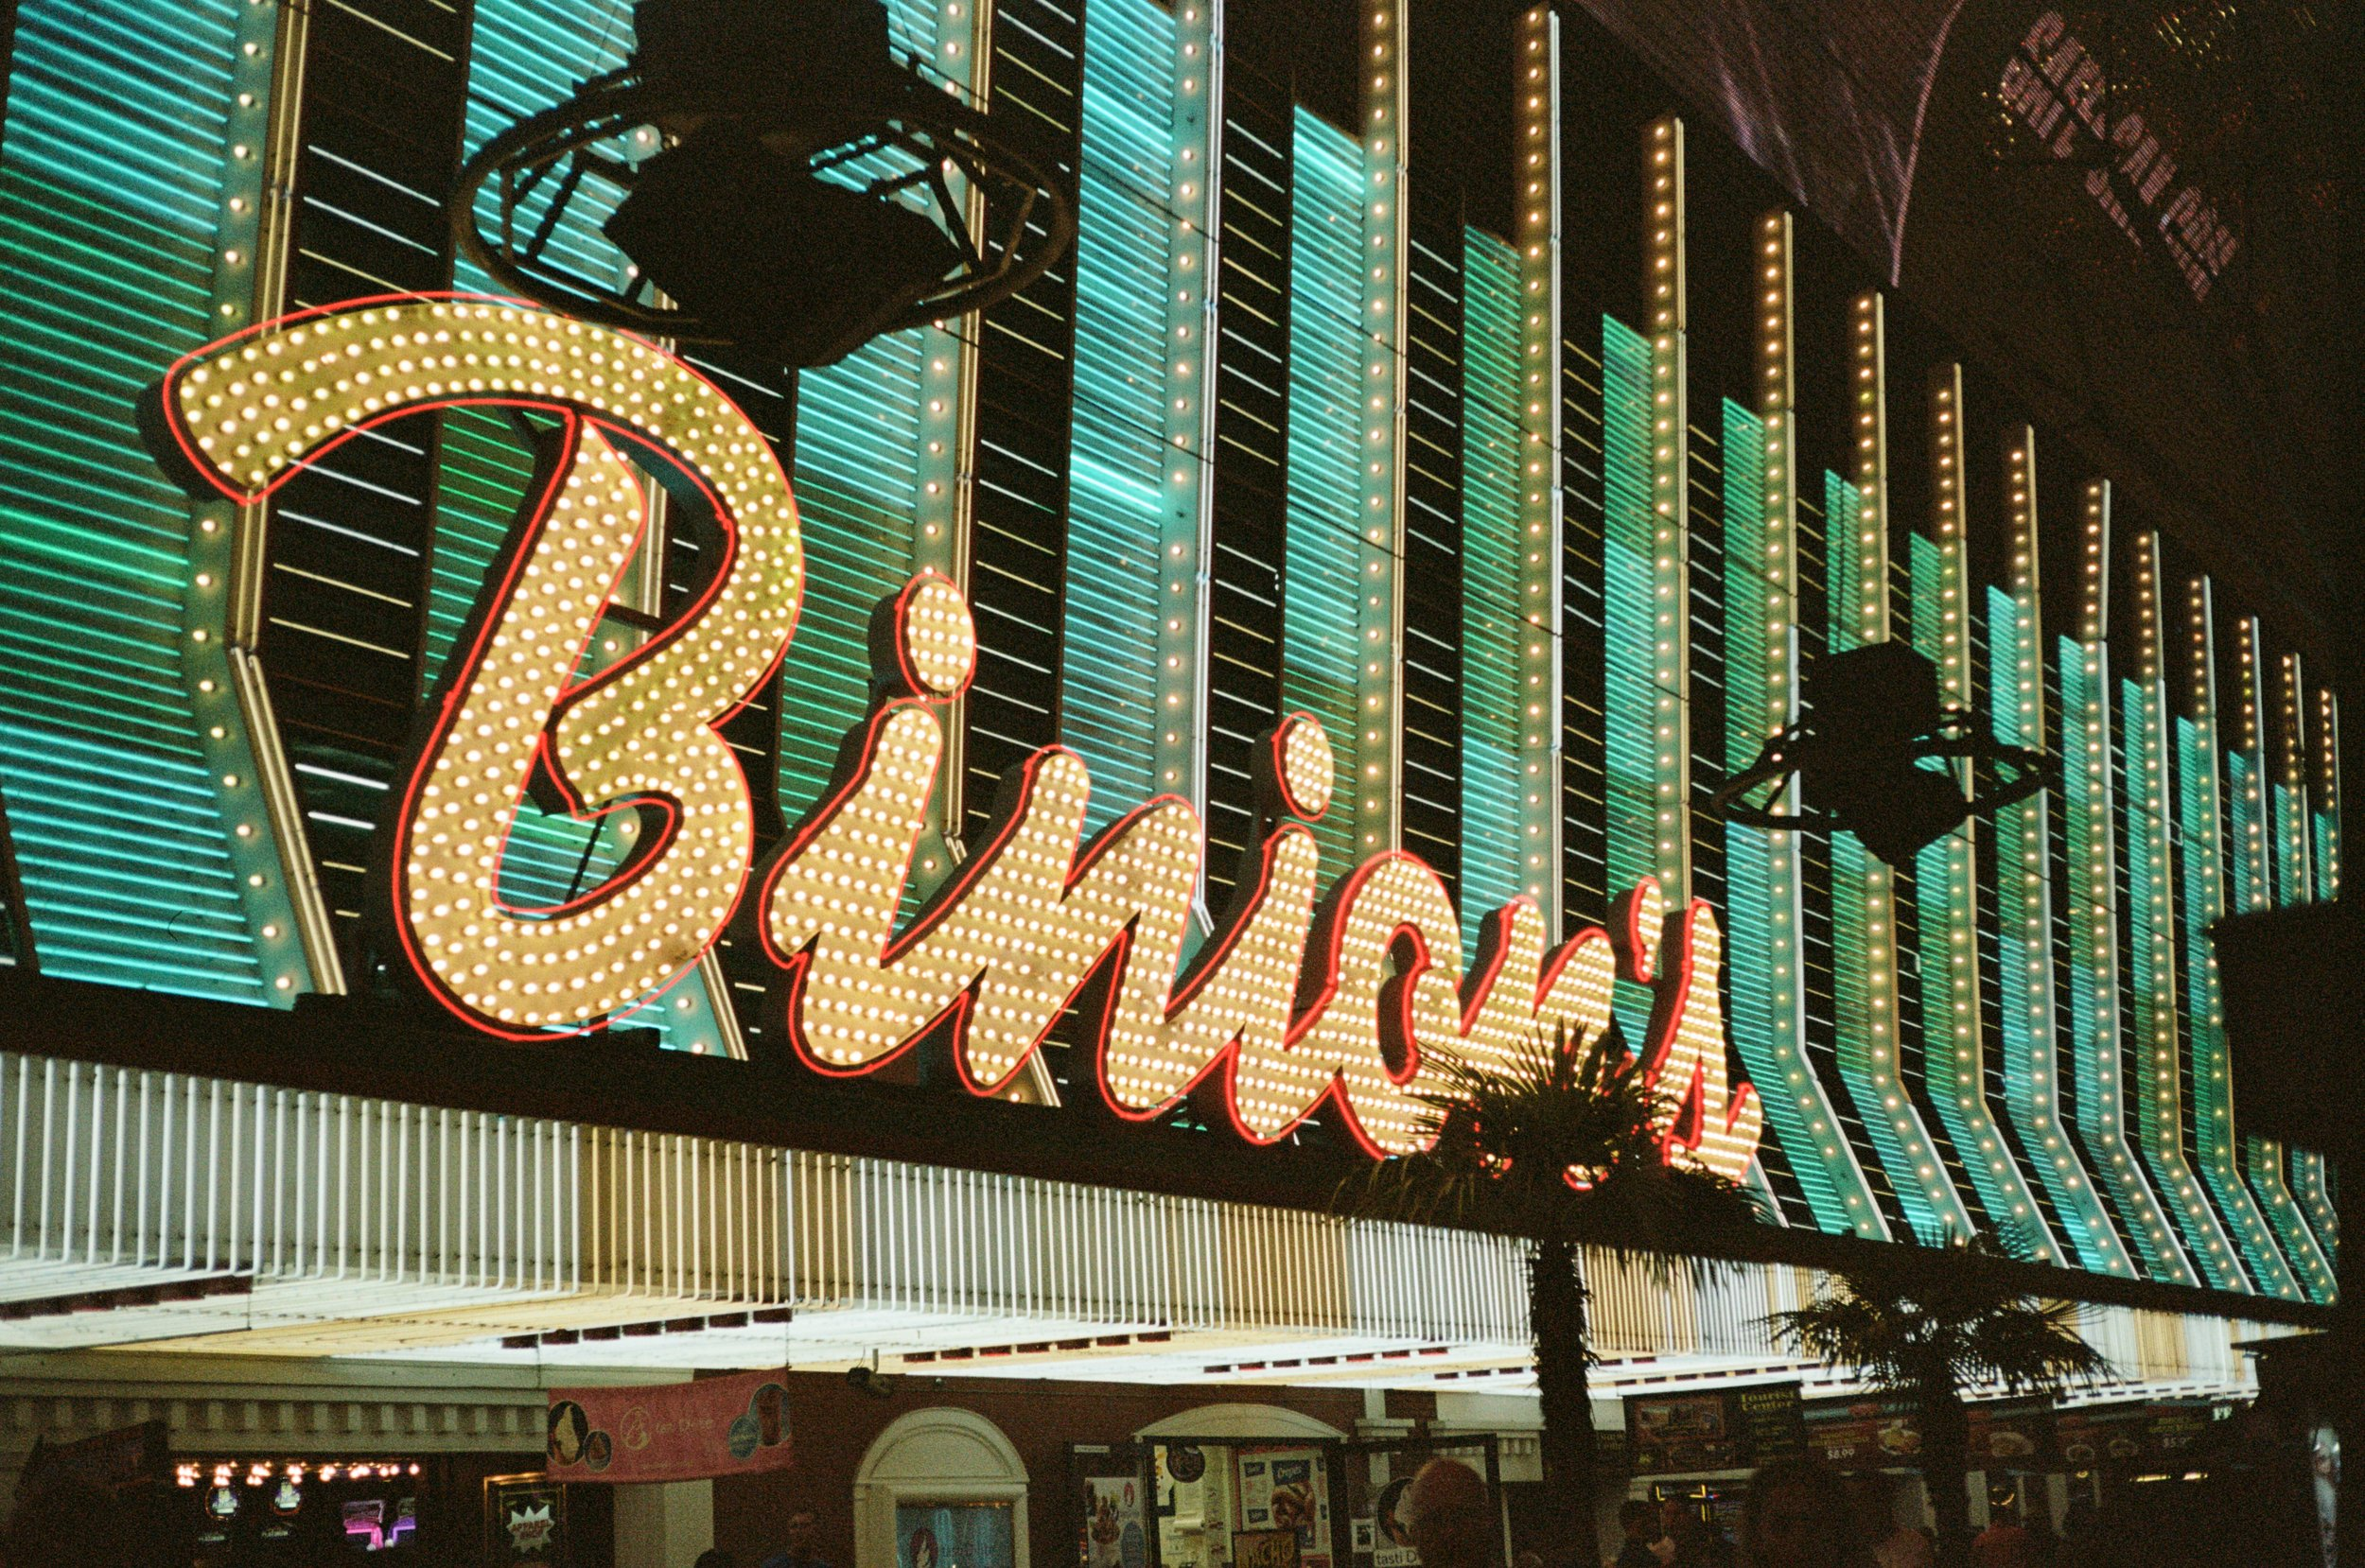 - I took my grandfather's film camera with us to Vegas and love how all the lights turned out with the grain + all.